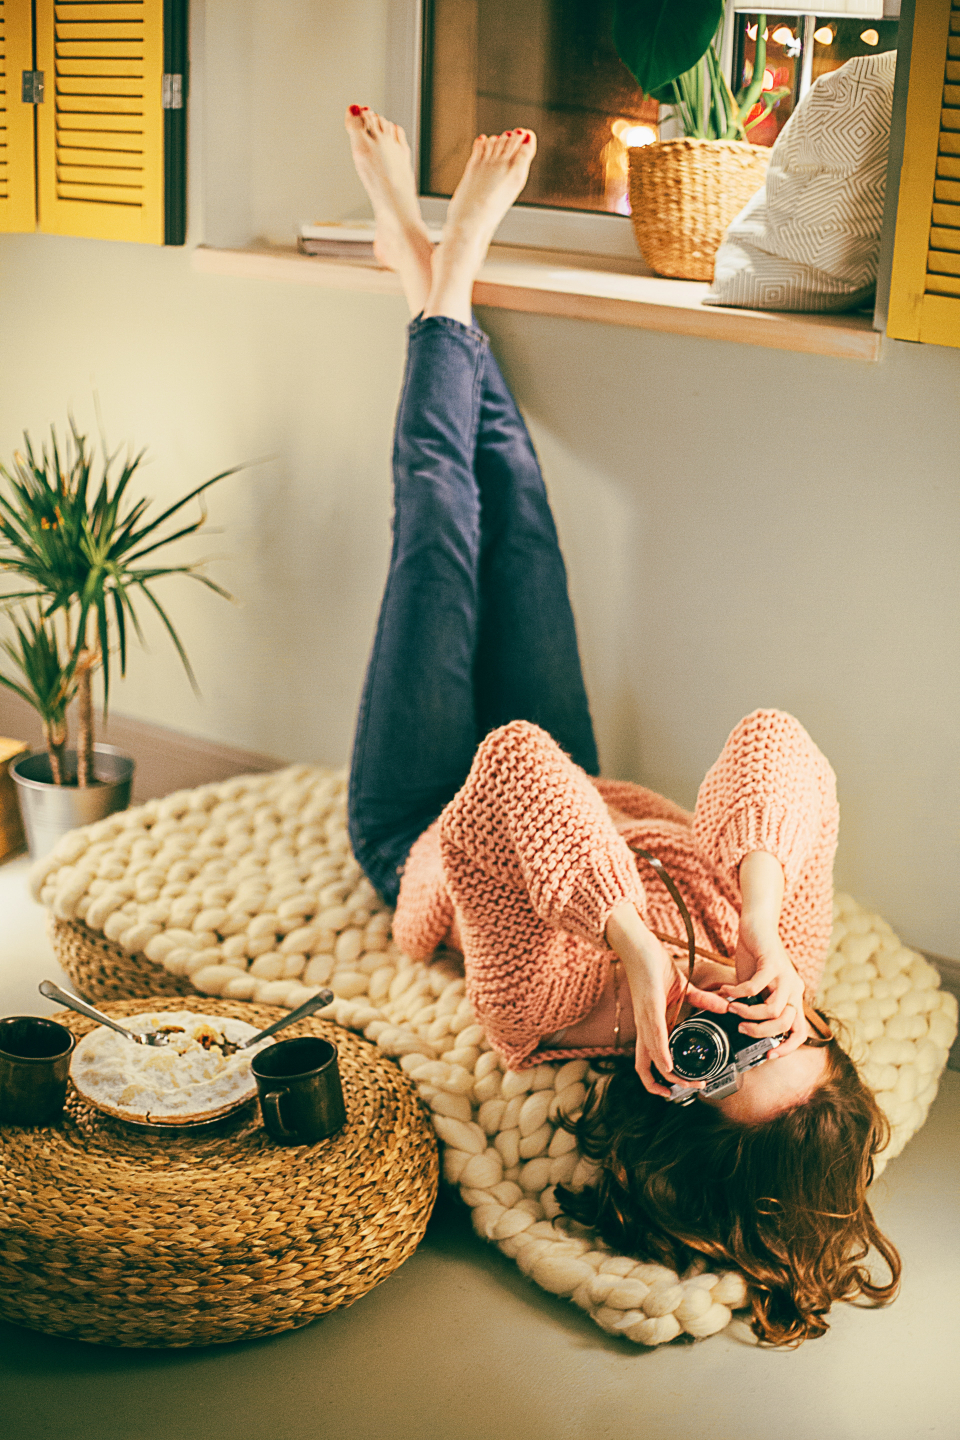 photographer woman quirky shot photo techology crossed legs jeans knitted jumper house home rug interior design